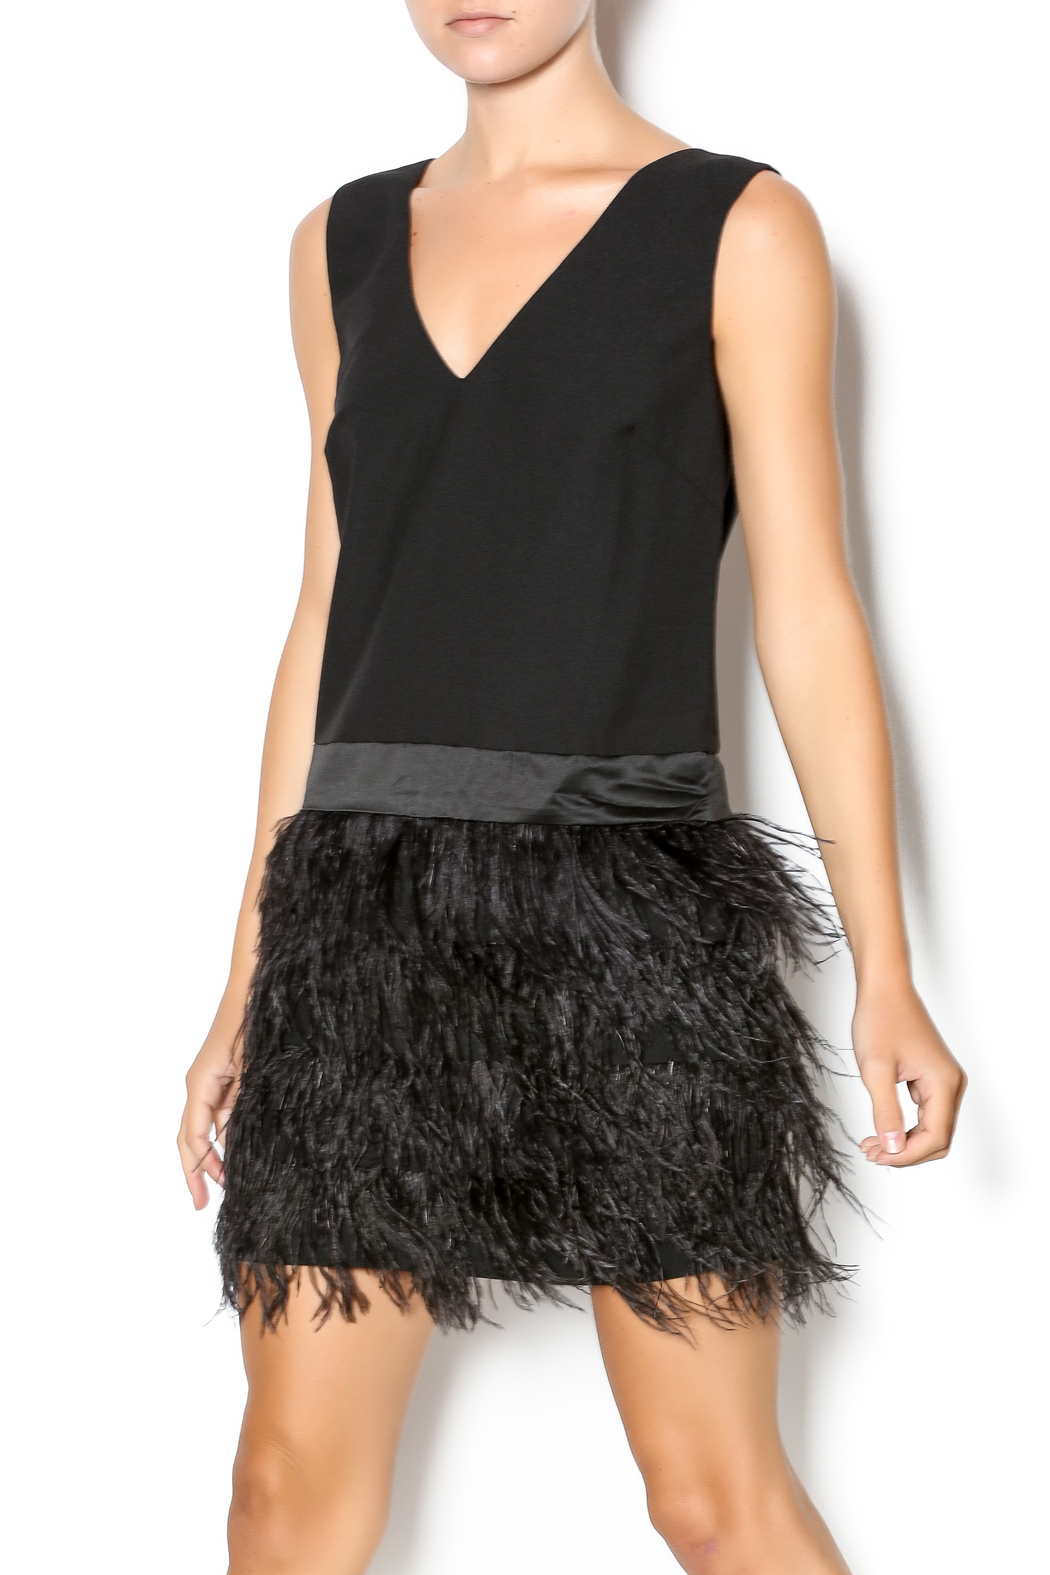 Ark Amp Co Black Feather Bottom Dress From New York By Dor